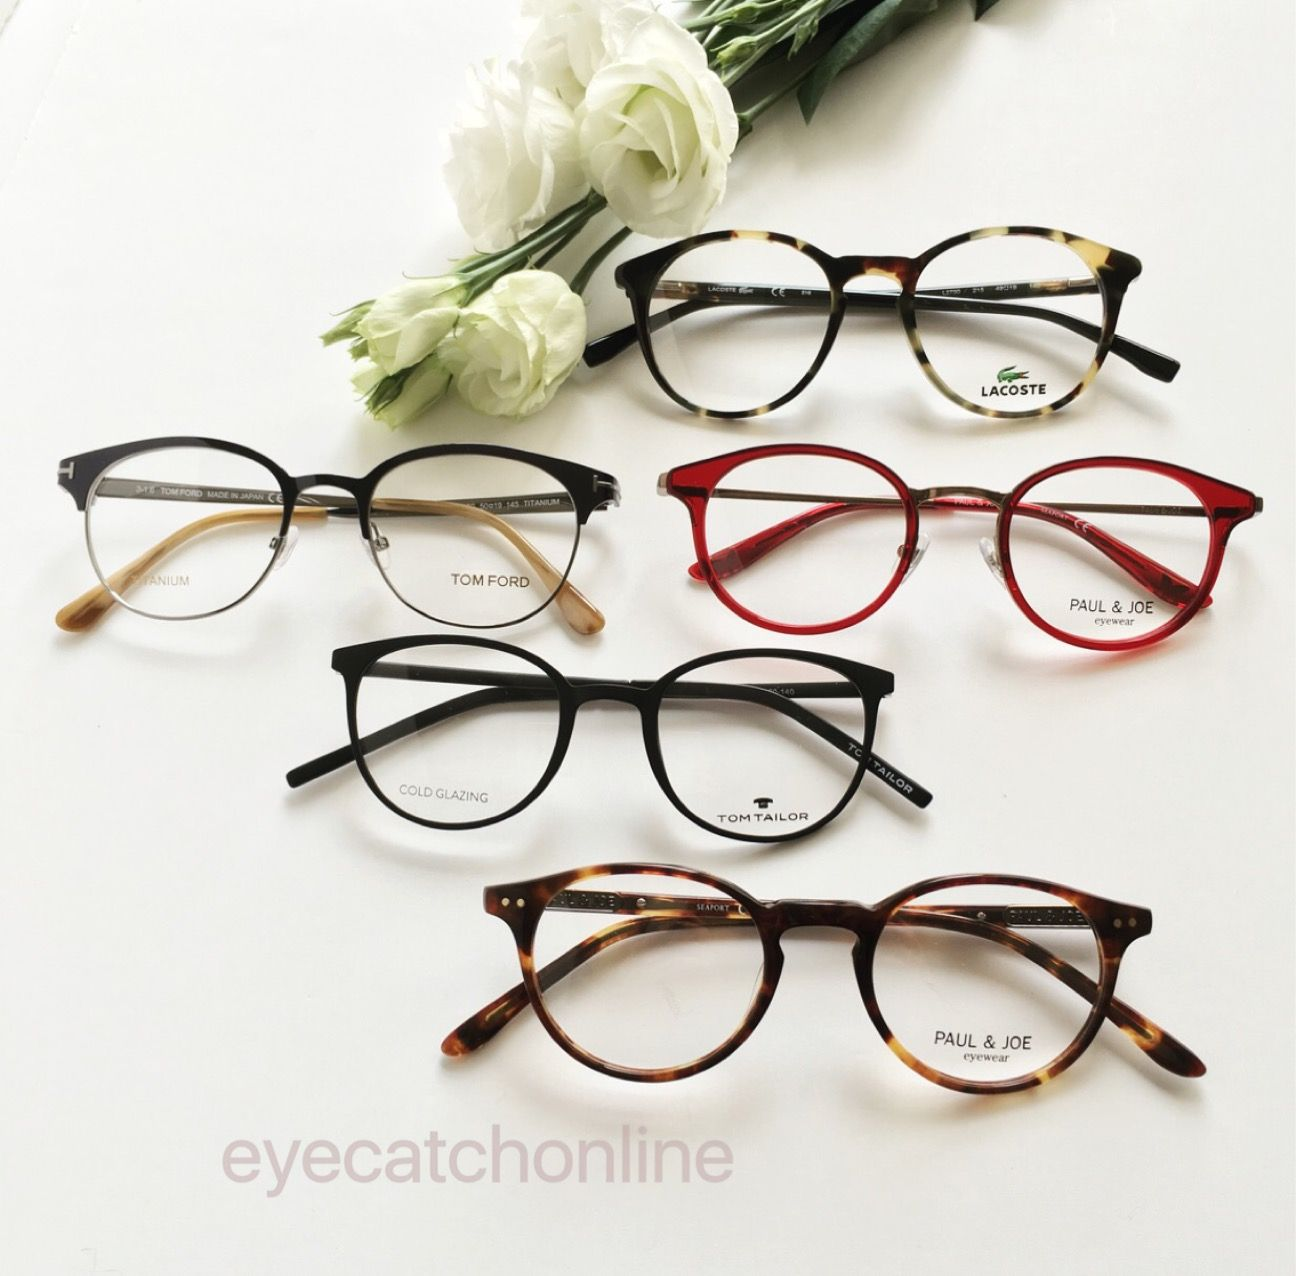 So lovely these frames from Paul & Joe - Lacoste - Tom Tailor and ...